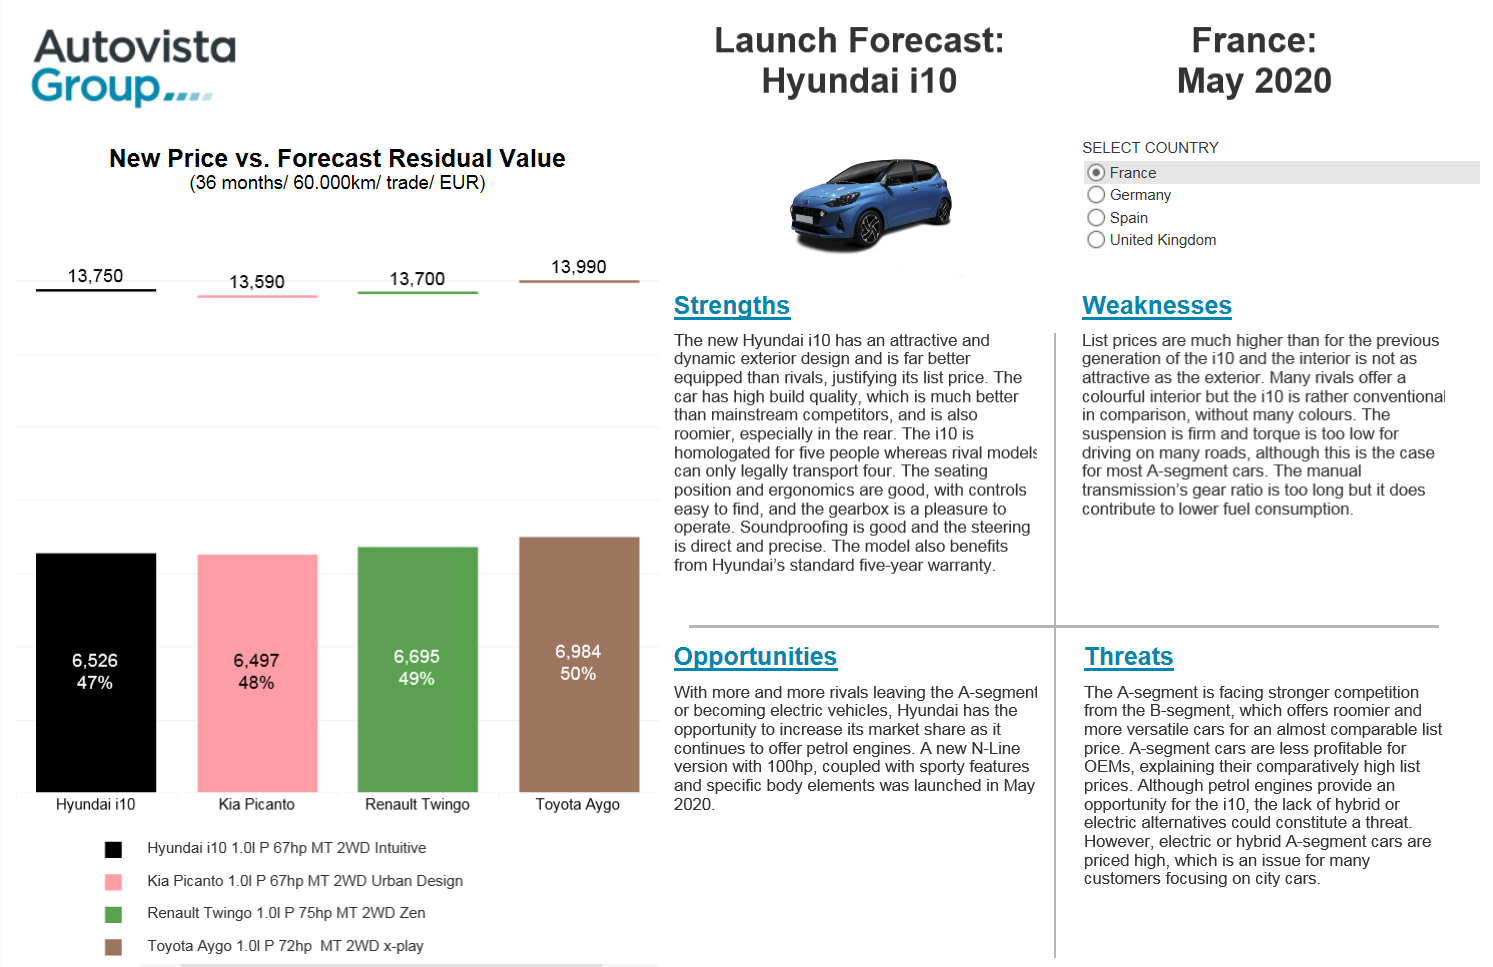 Hyundai i10 launch forecast screenshot